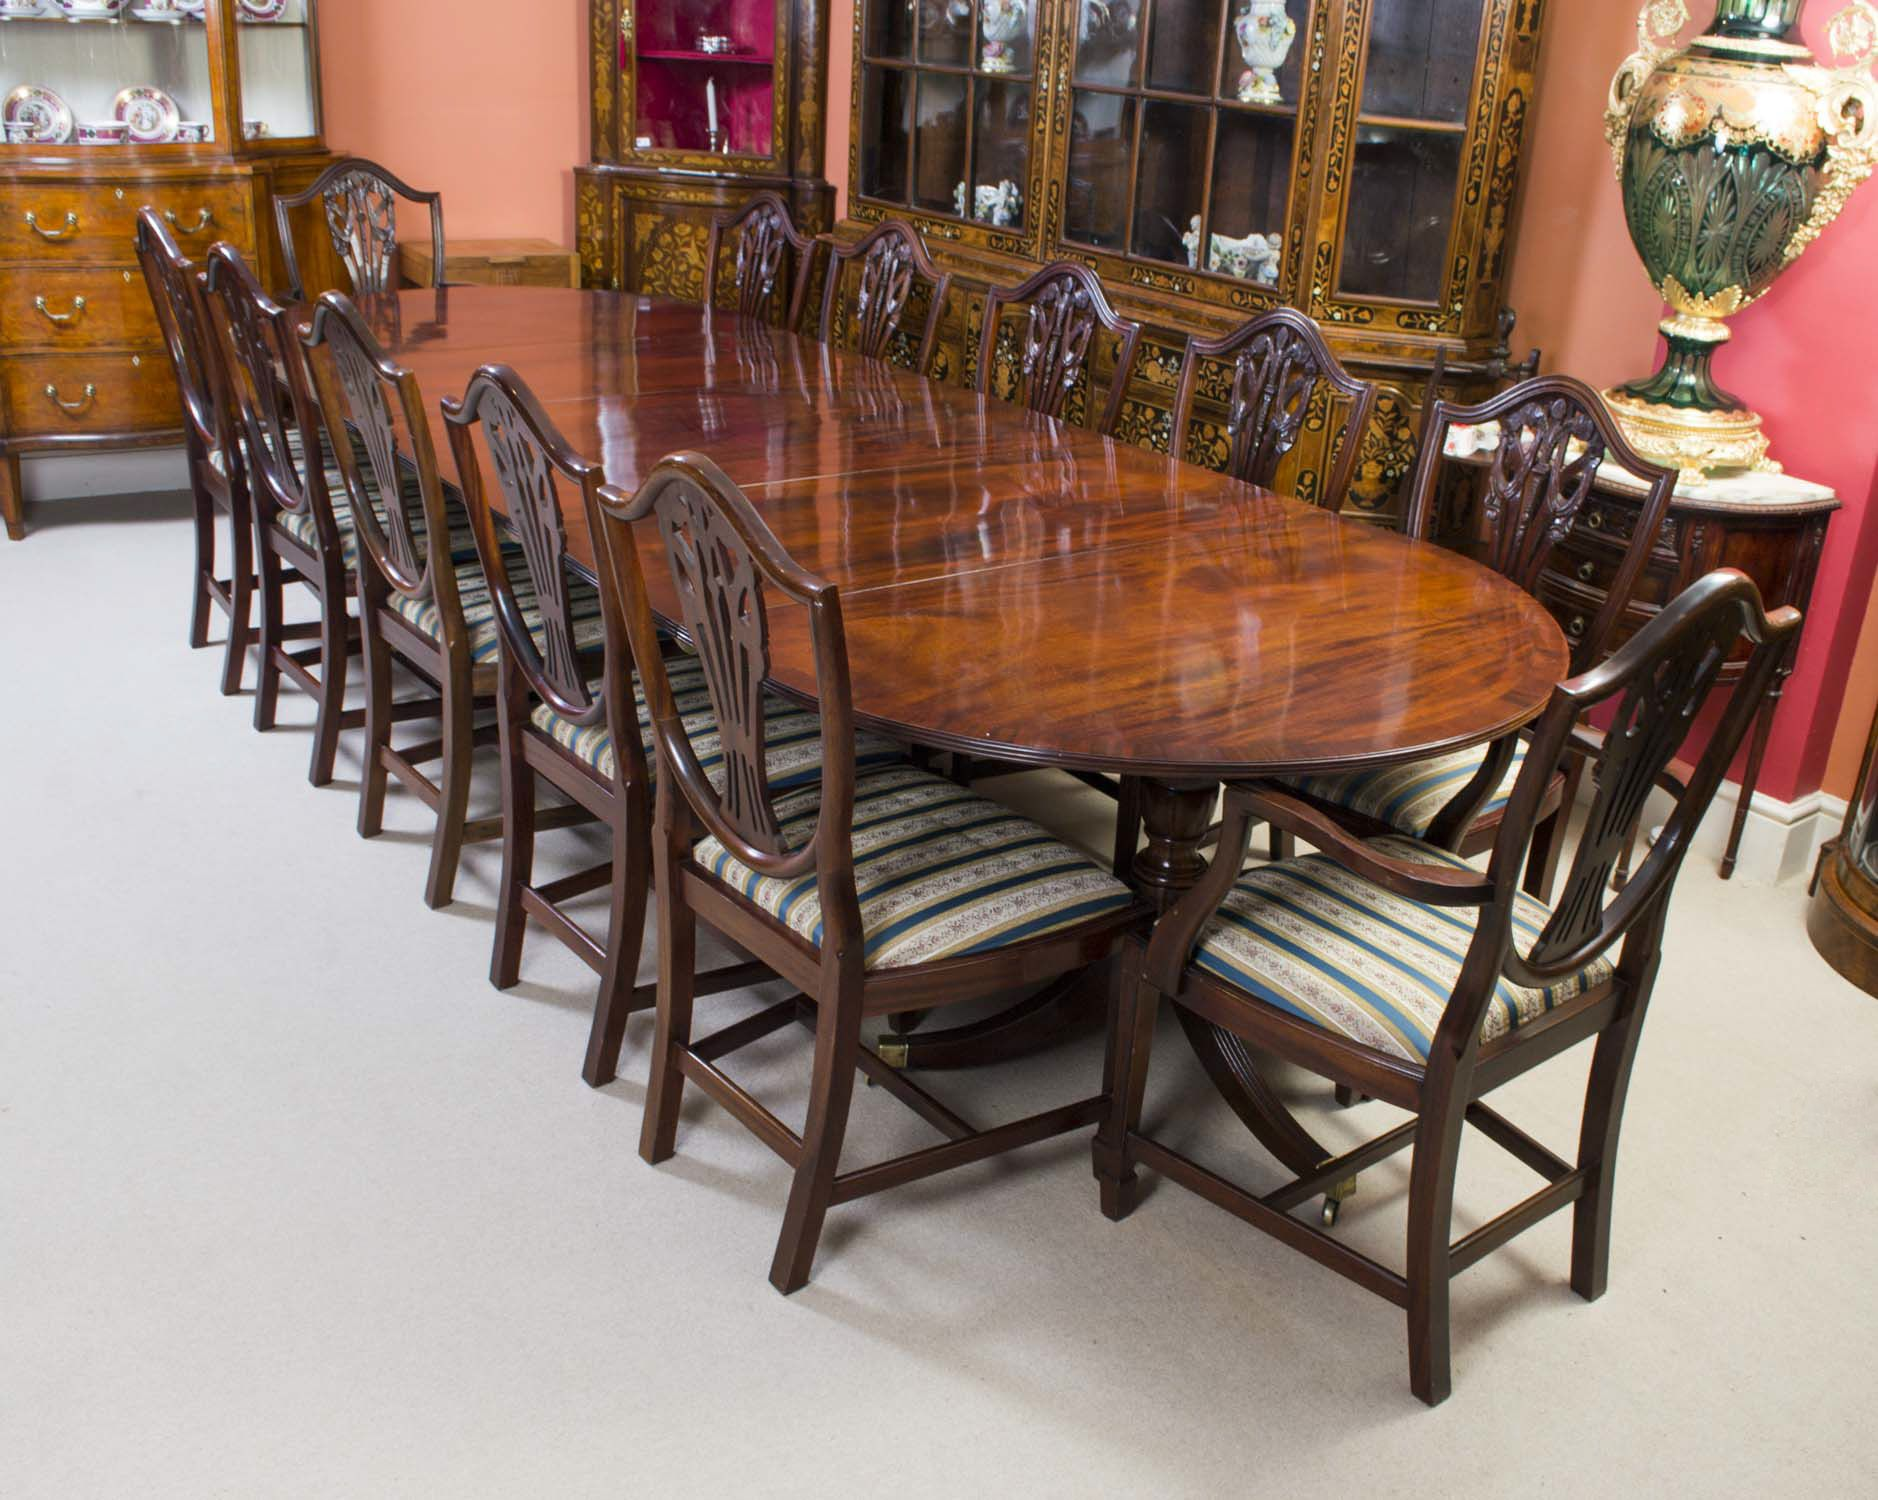 Antique Regency Dining Table & 12 Chairs c.1900 | Large ...